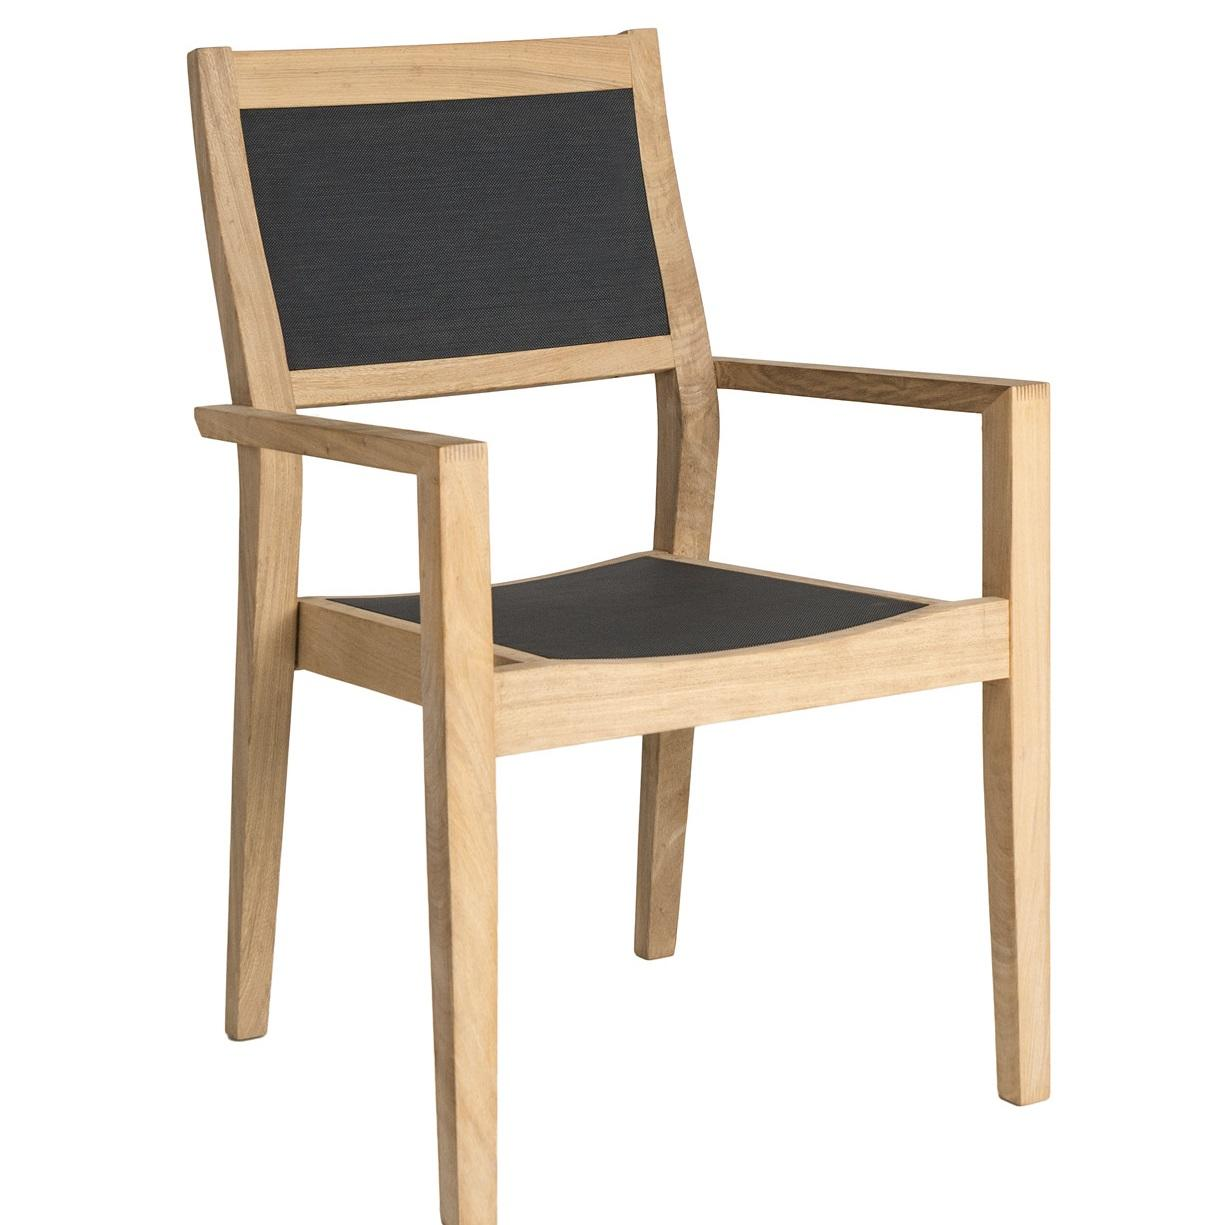 textilene_wood_garden_dining_chair_modern_roble_hardwood